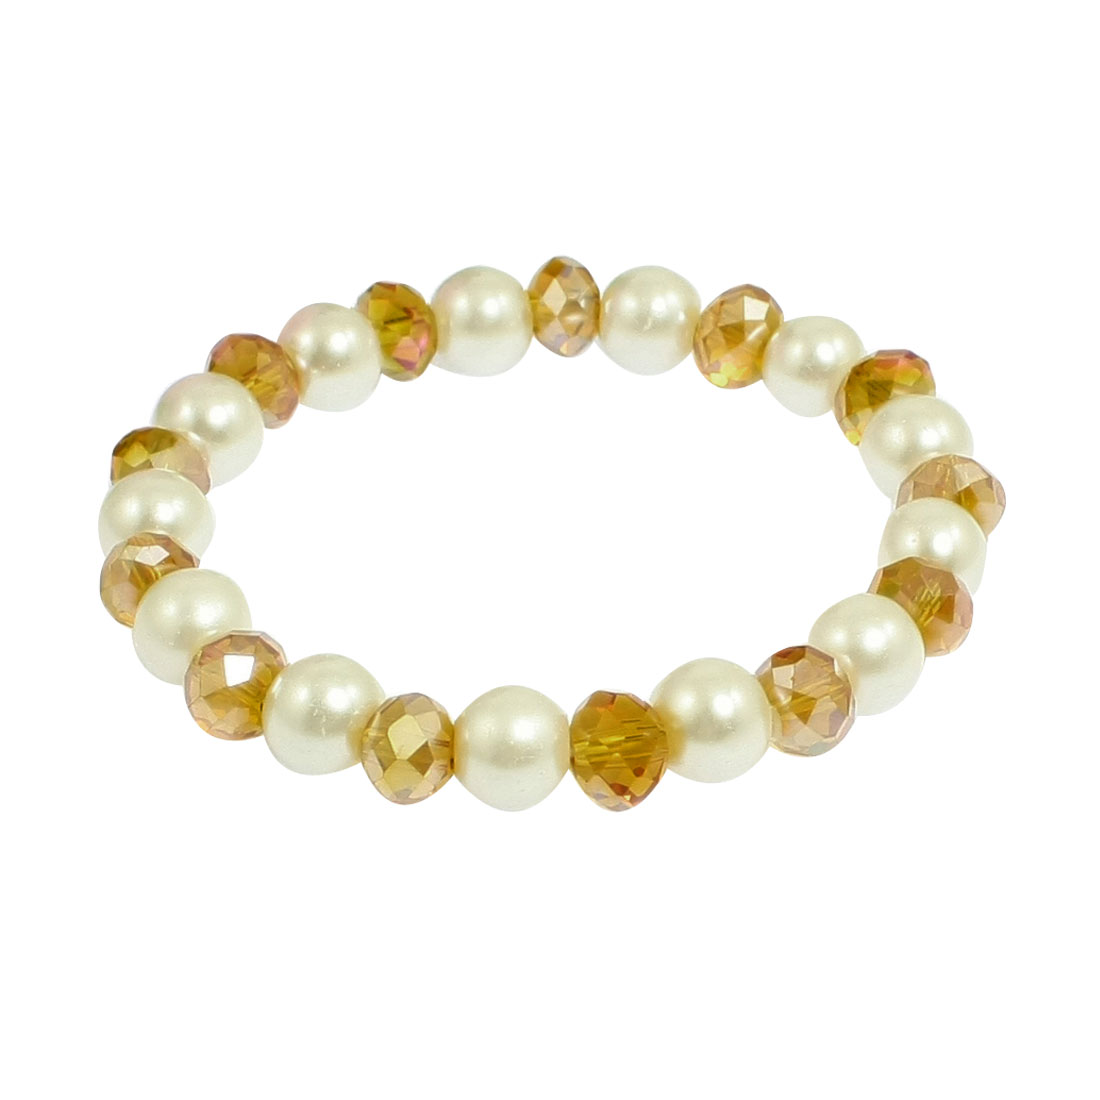 Amber Color Plastic Crystal Beaded Imitation Pearl Elastic Wrist Bracelet